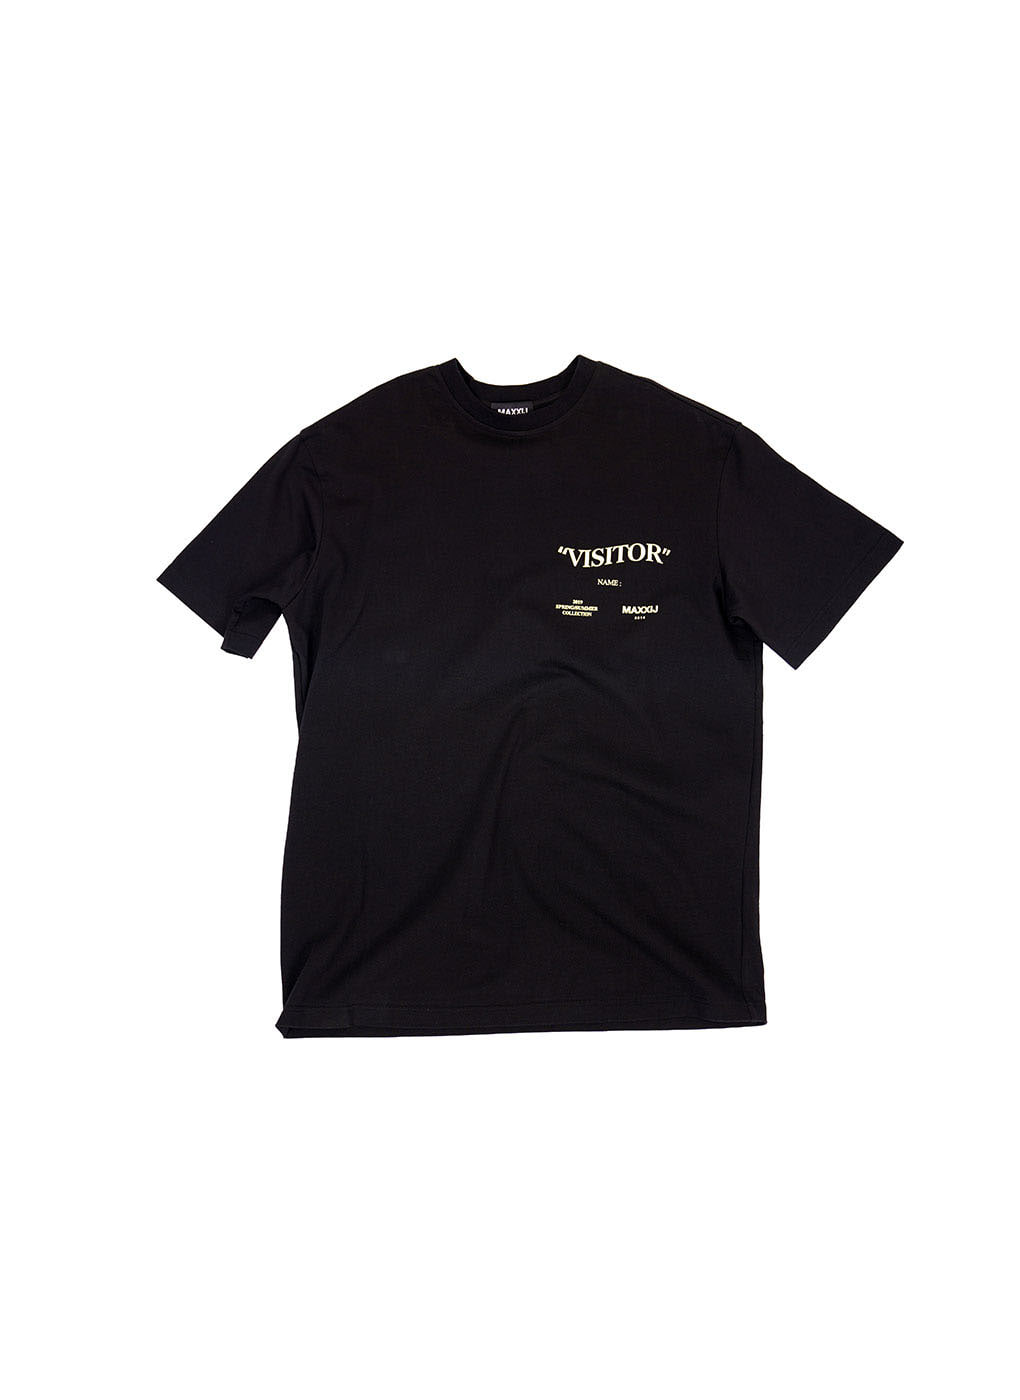 Black 'Visitor' T-shirt